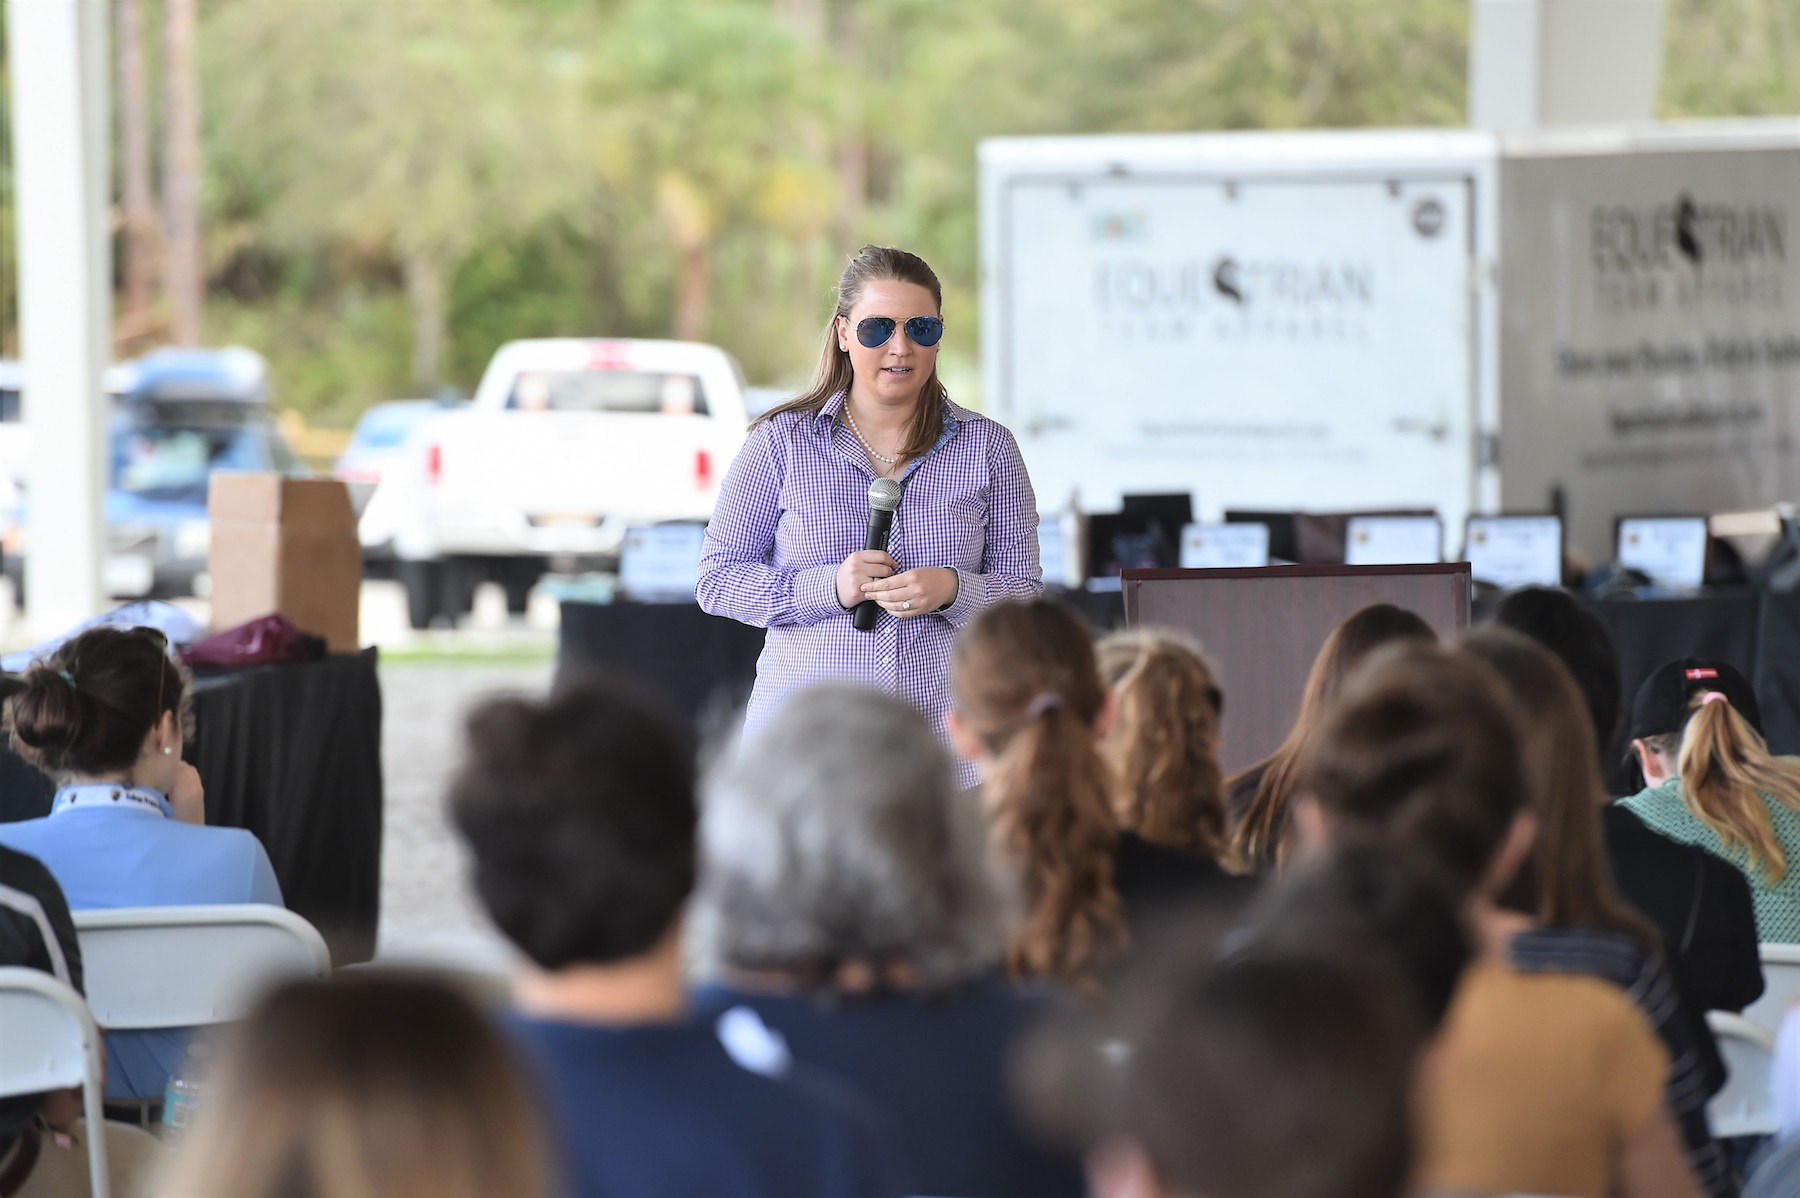 Dr. Piper Klemm, publisher of The Plaid Horse, speaks to students at the 2018 CPI Florida. Photo by Andrew Ryback Photography